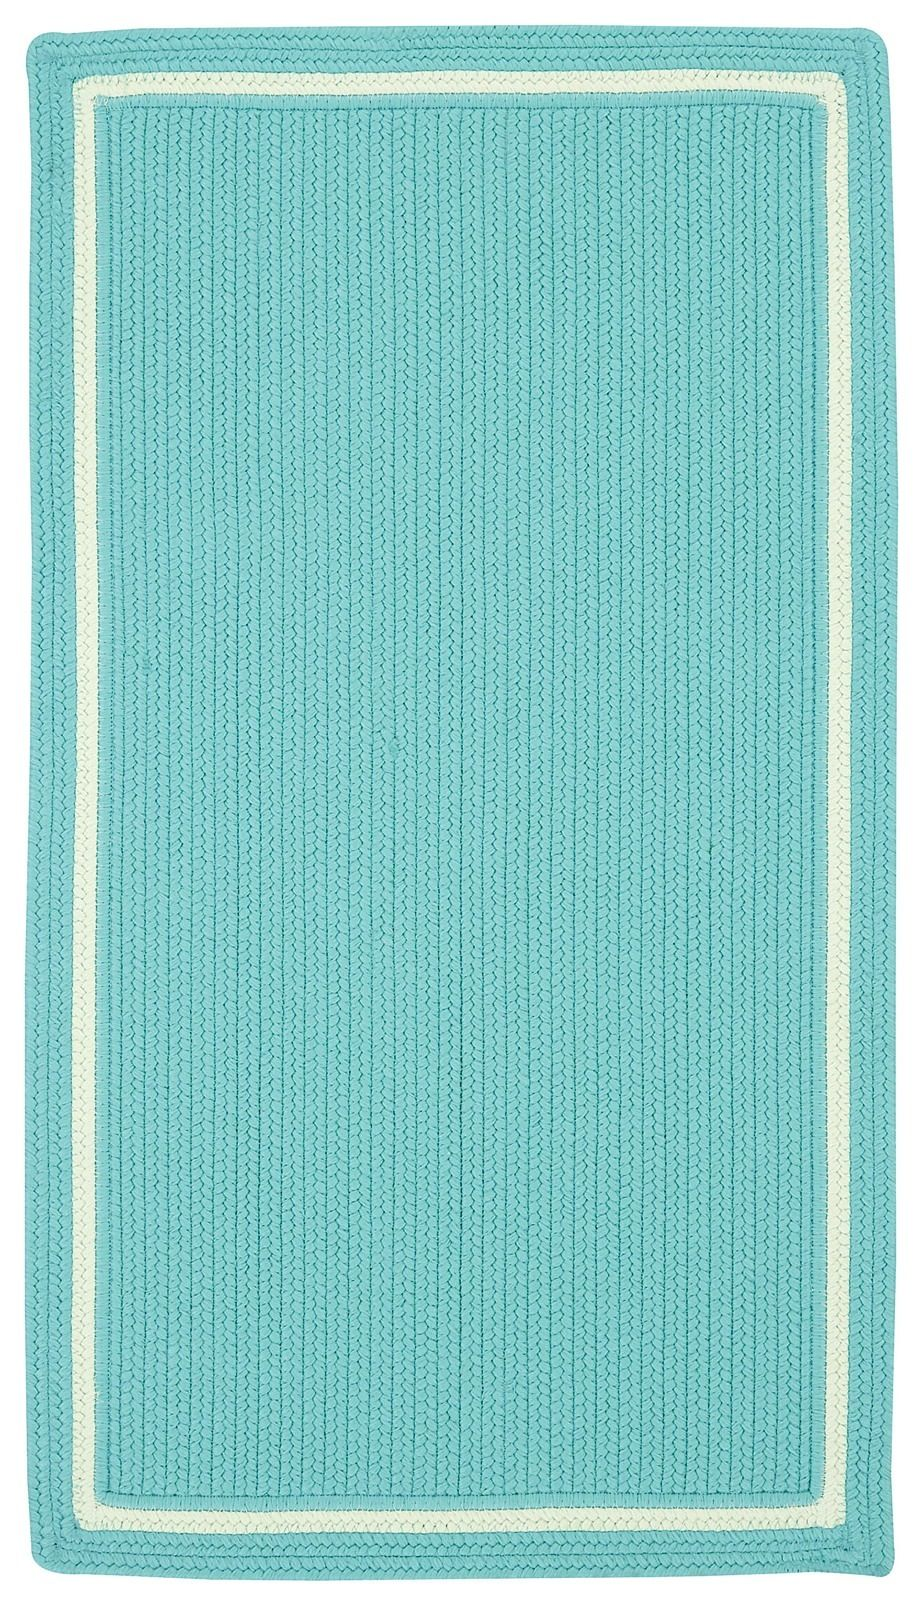 capel allentown braided area rug collection